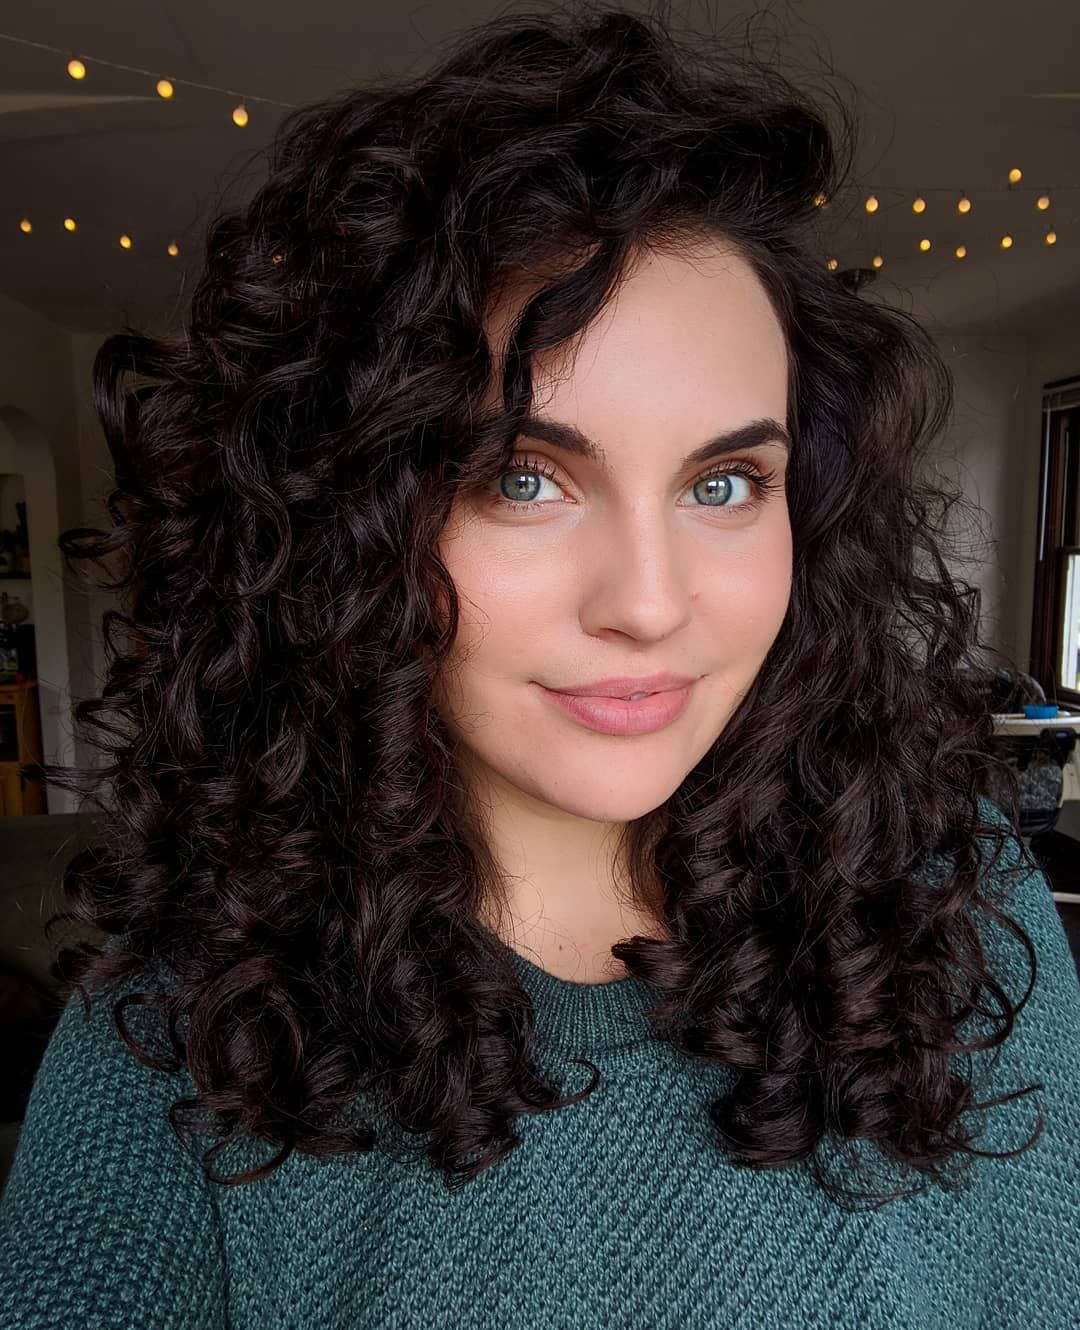 Curly Tay On Instagram I Styled With One Product Yes One And With A Product That I Never Thoug Curly Hair Styles 3a Curly Hair Curly Hair Styles Naturally